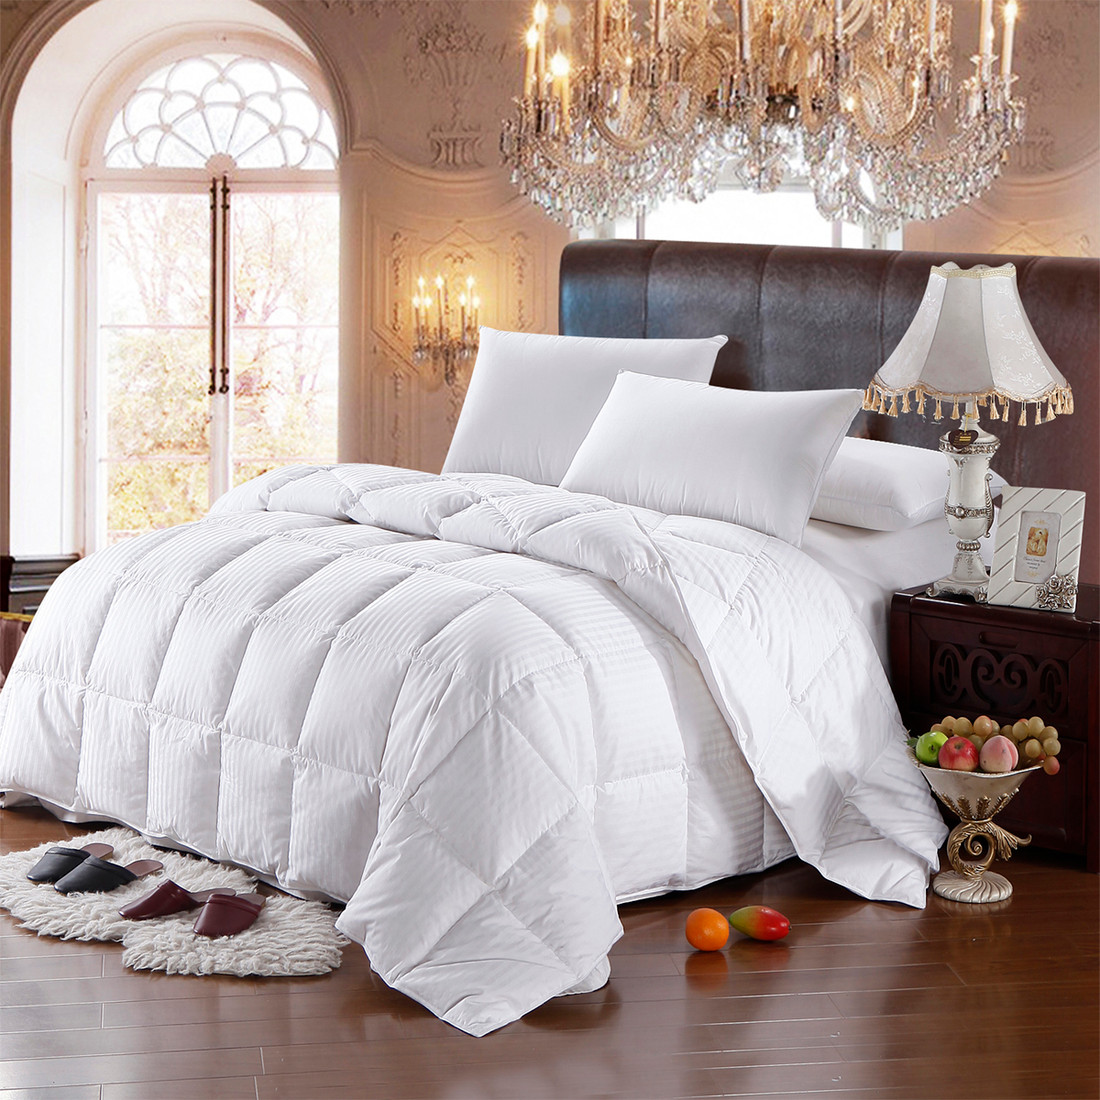 best white goose down comforter queen size. Black Bedroom Furniture Sets. Home Design Ideas